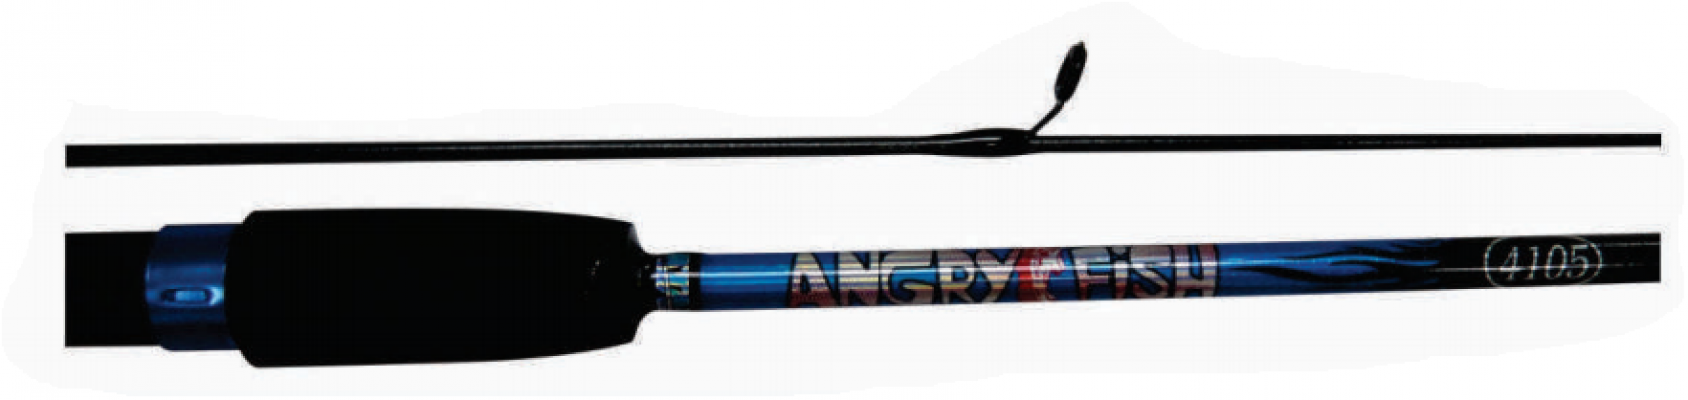 4105 ANGRY FISH PRAWN ROD (HOLLOW-SOLID TOP)